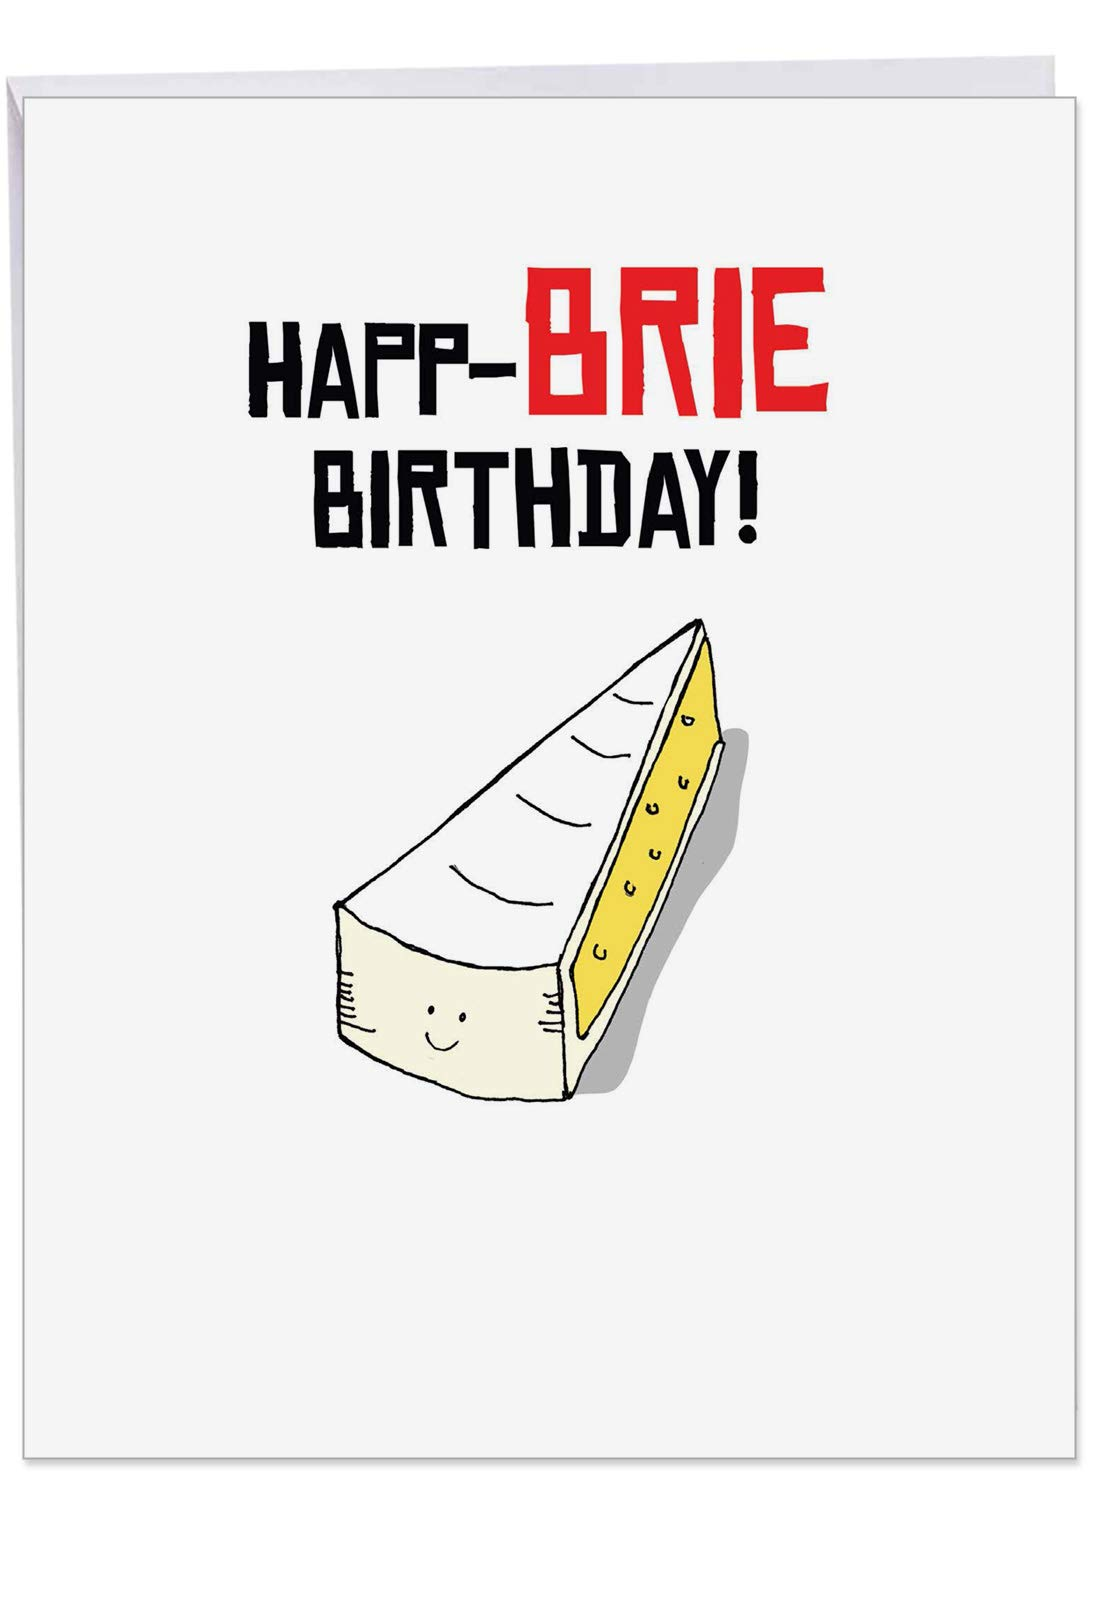 Birthday Puns E - Funny Happy Birthday Card with Envelope (Extra Large 8.5 x 11 Inch) - Cheesy Cake Lovers Bday Notecard from Friends, Hilarious Stationery Greeting Card J6119EBDG